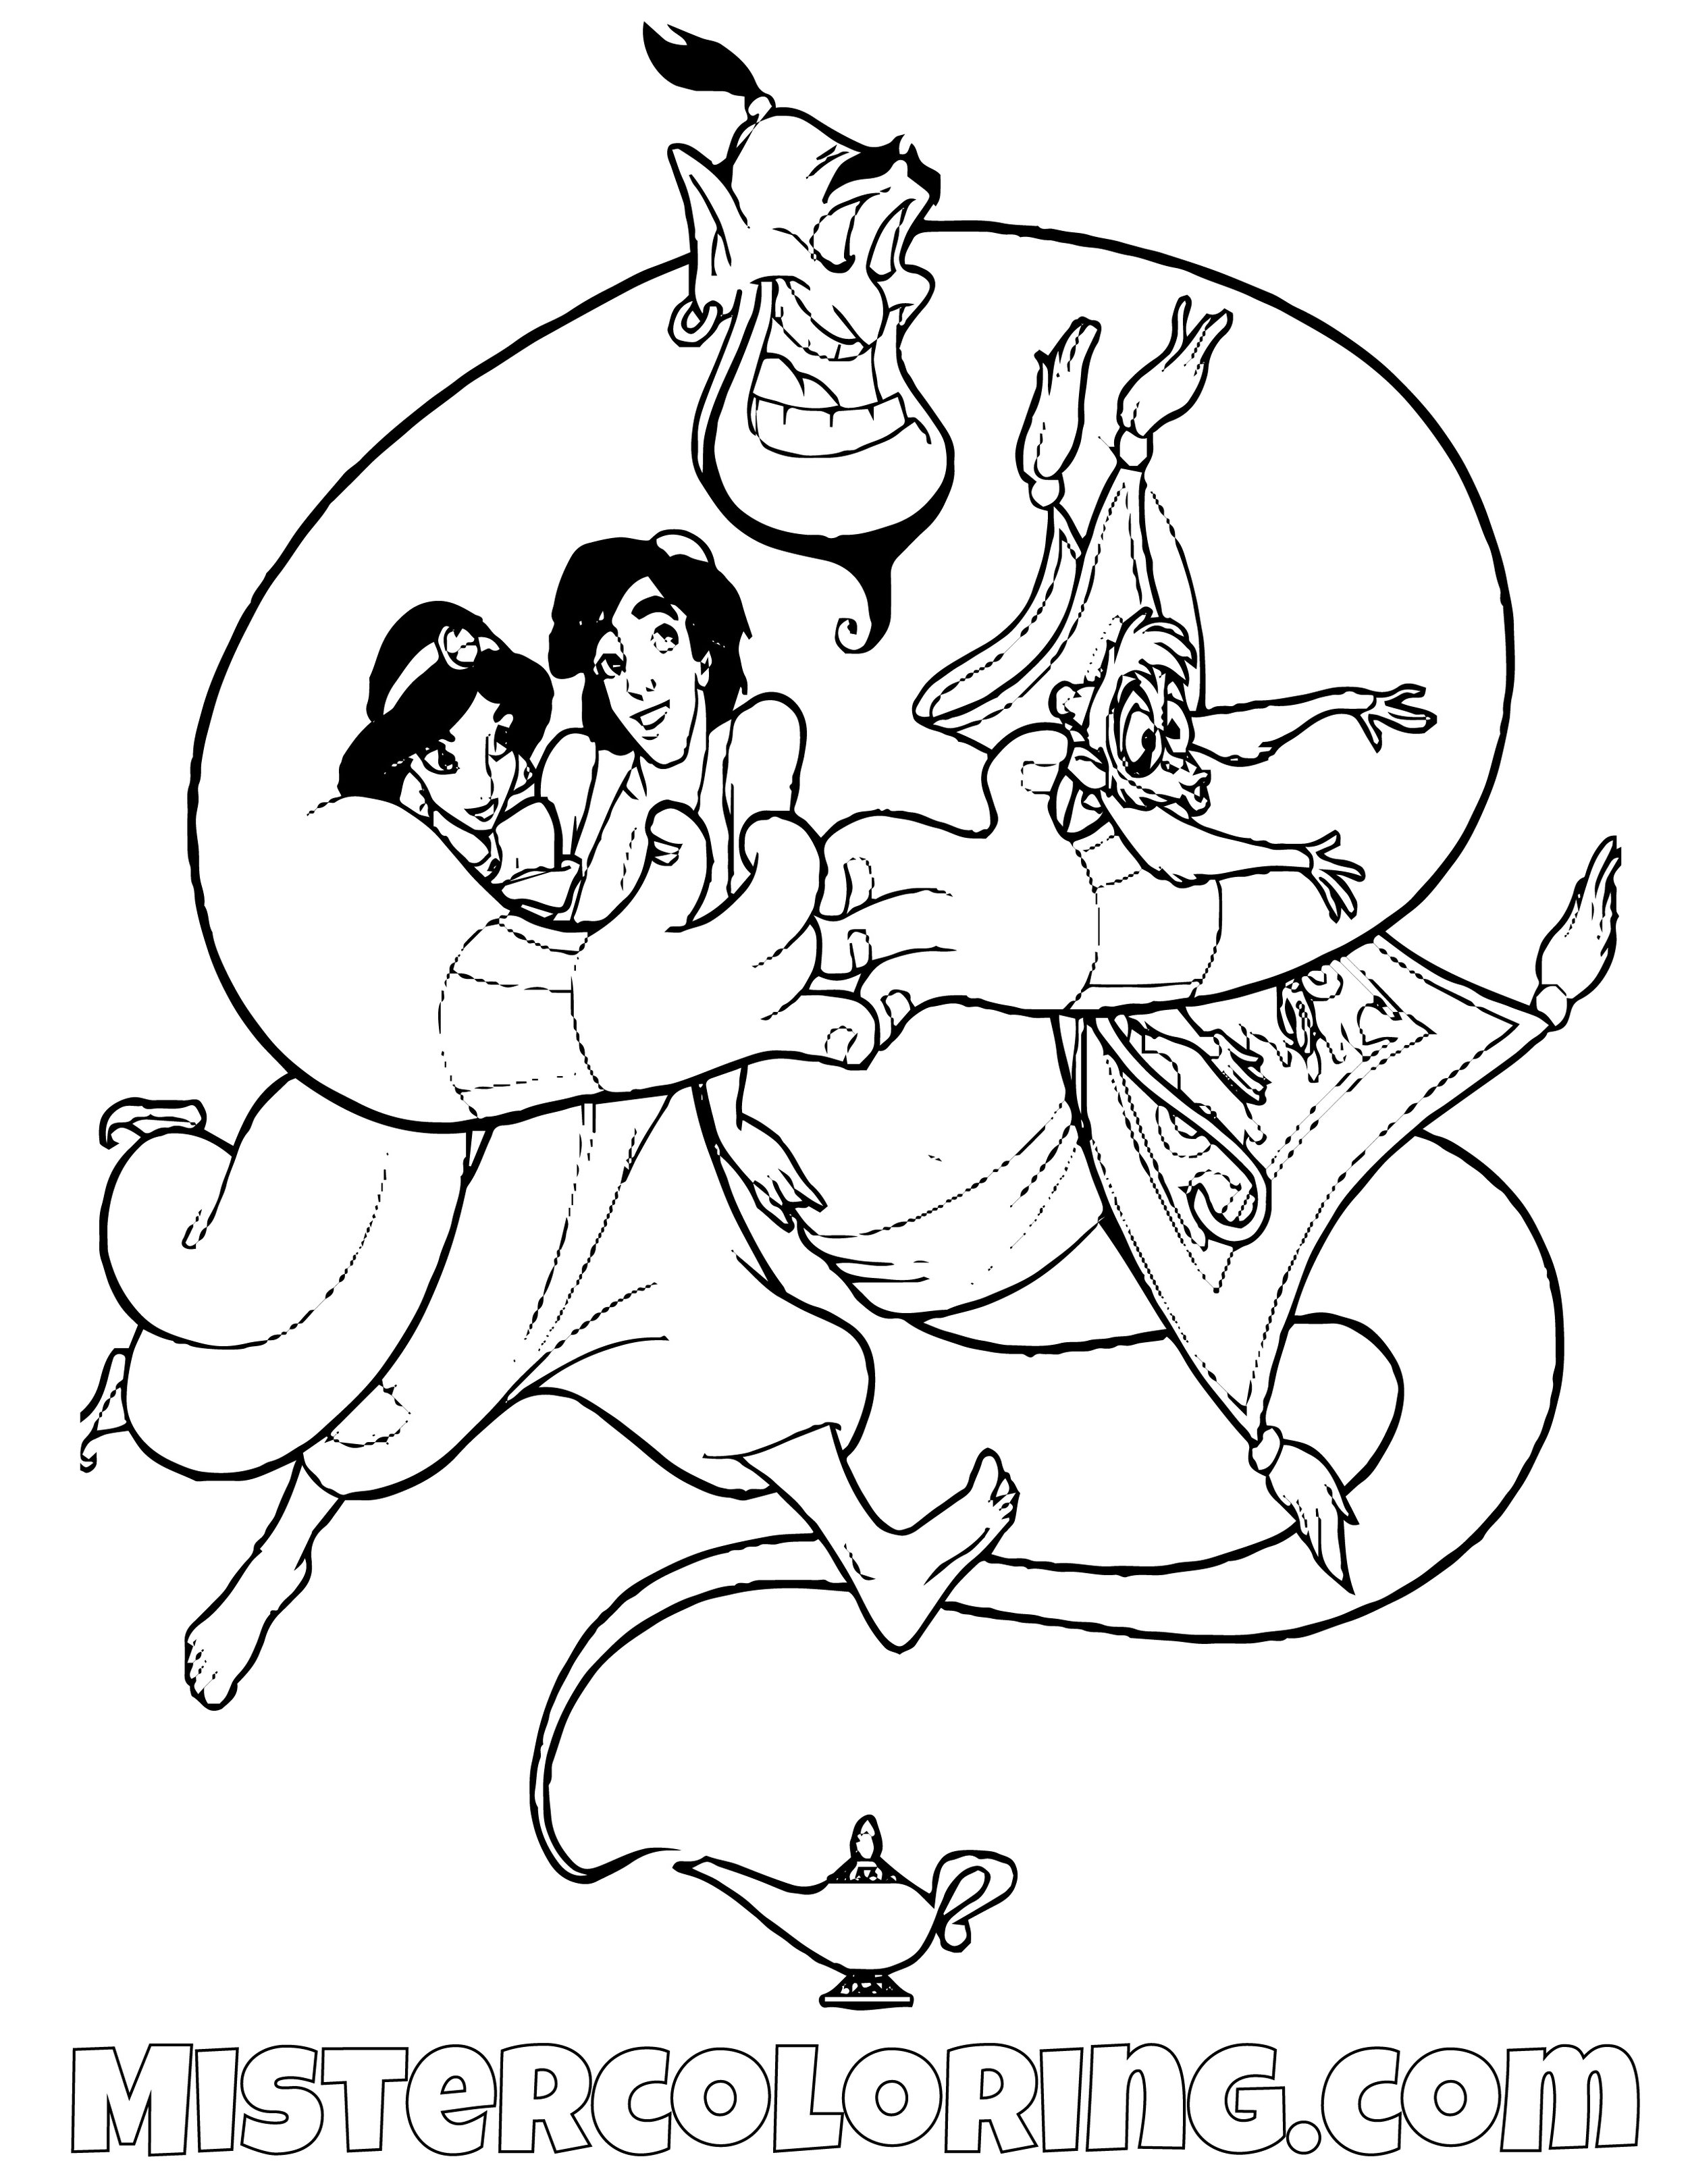 Genie Hugging Princess Jasmine Aladdin And Abu Aladdin Coloring Page